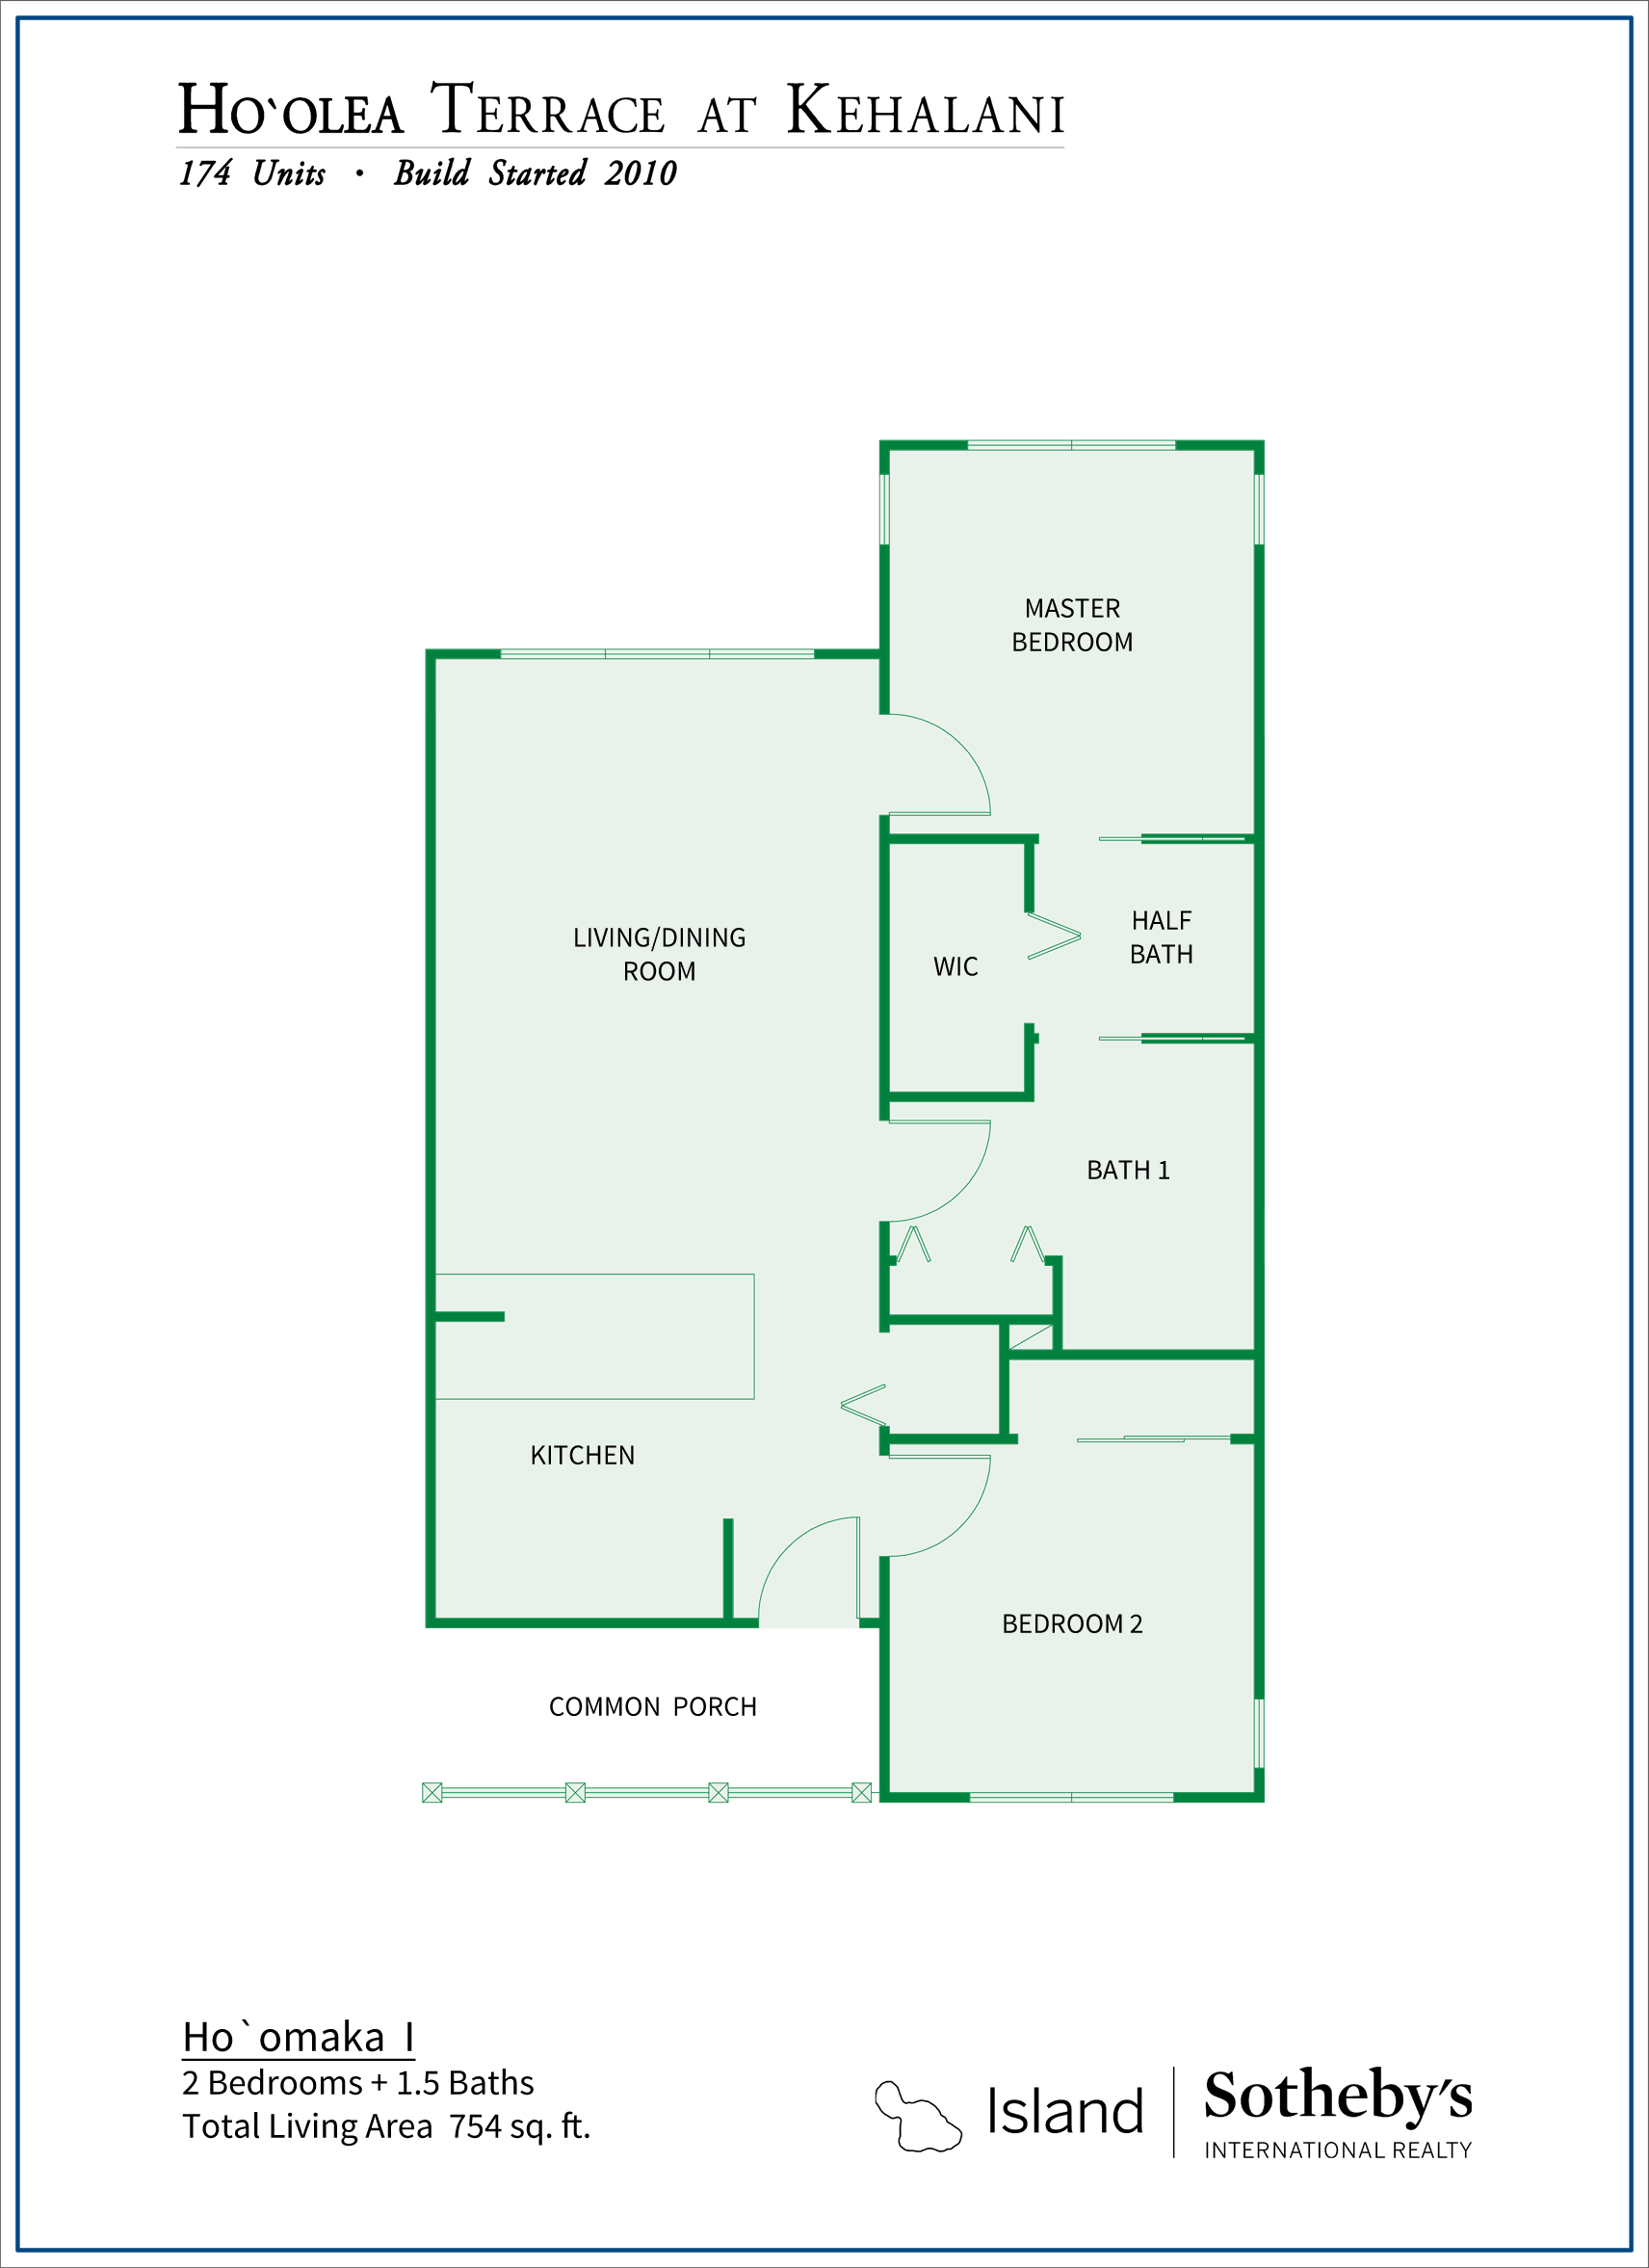 Hoolea Terrace Floor Plan 2